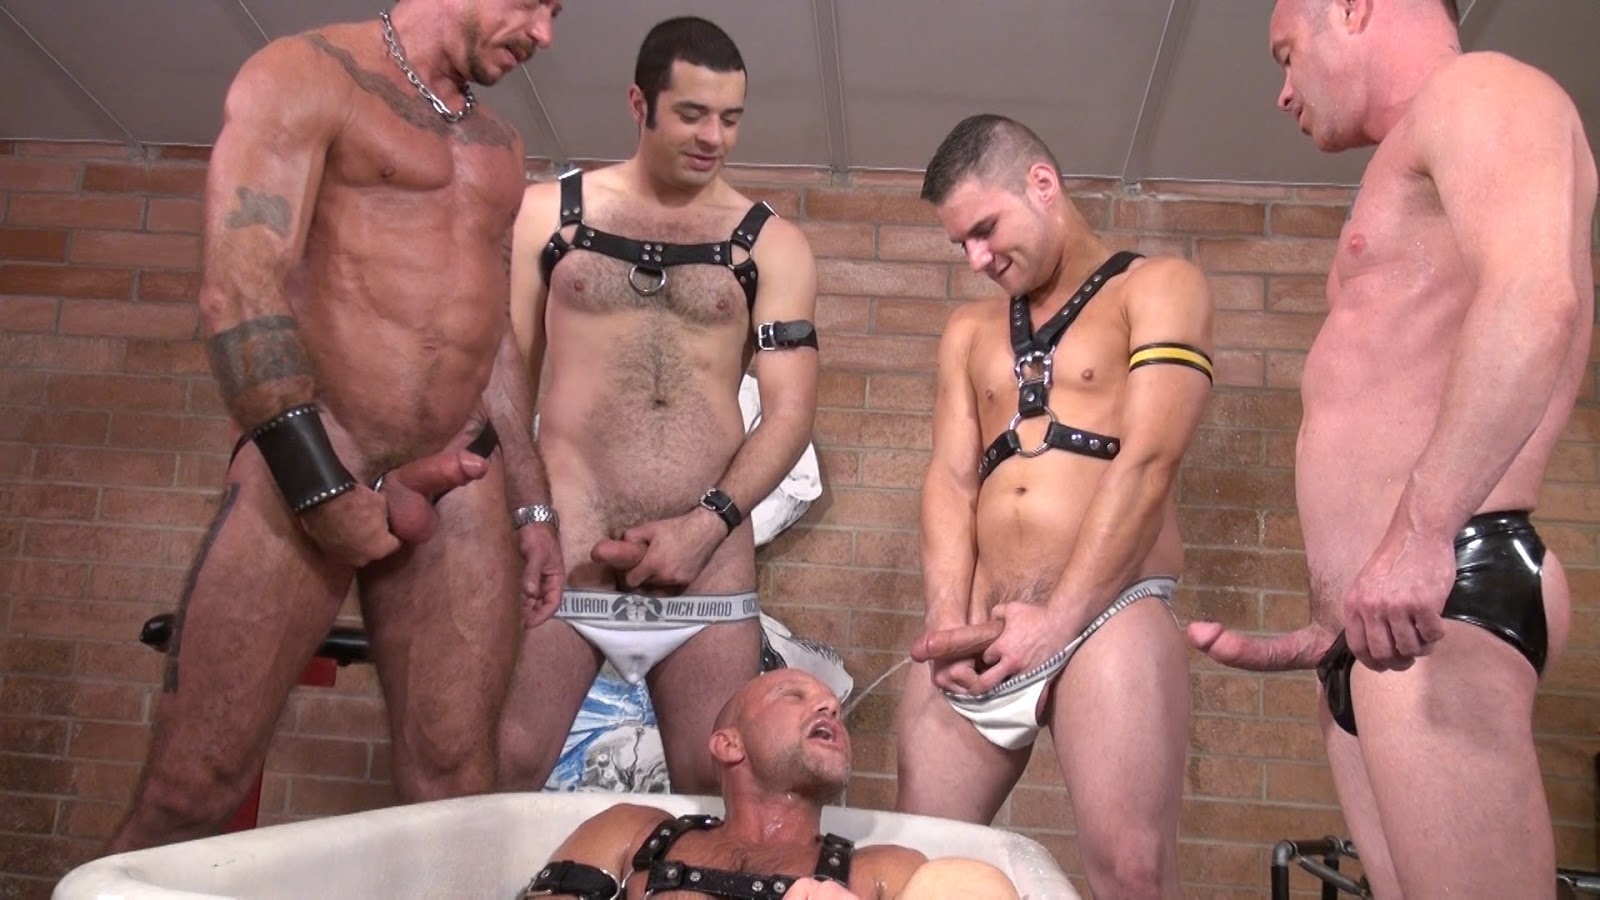 Dutch pissboys orgy video